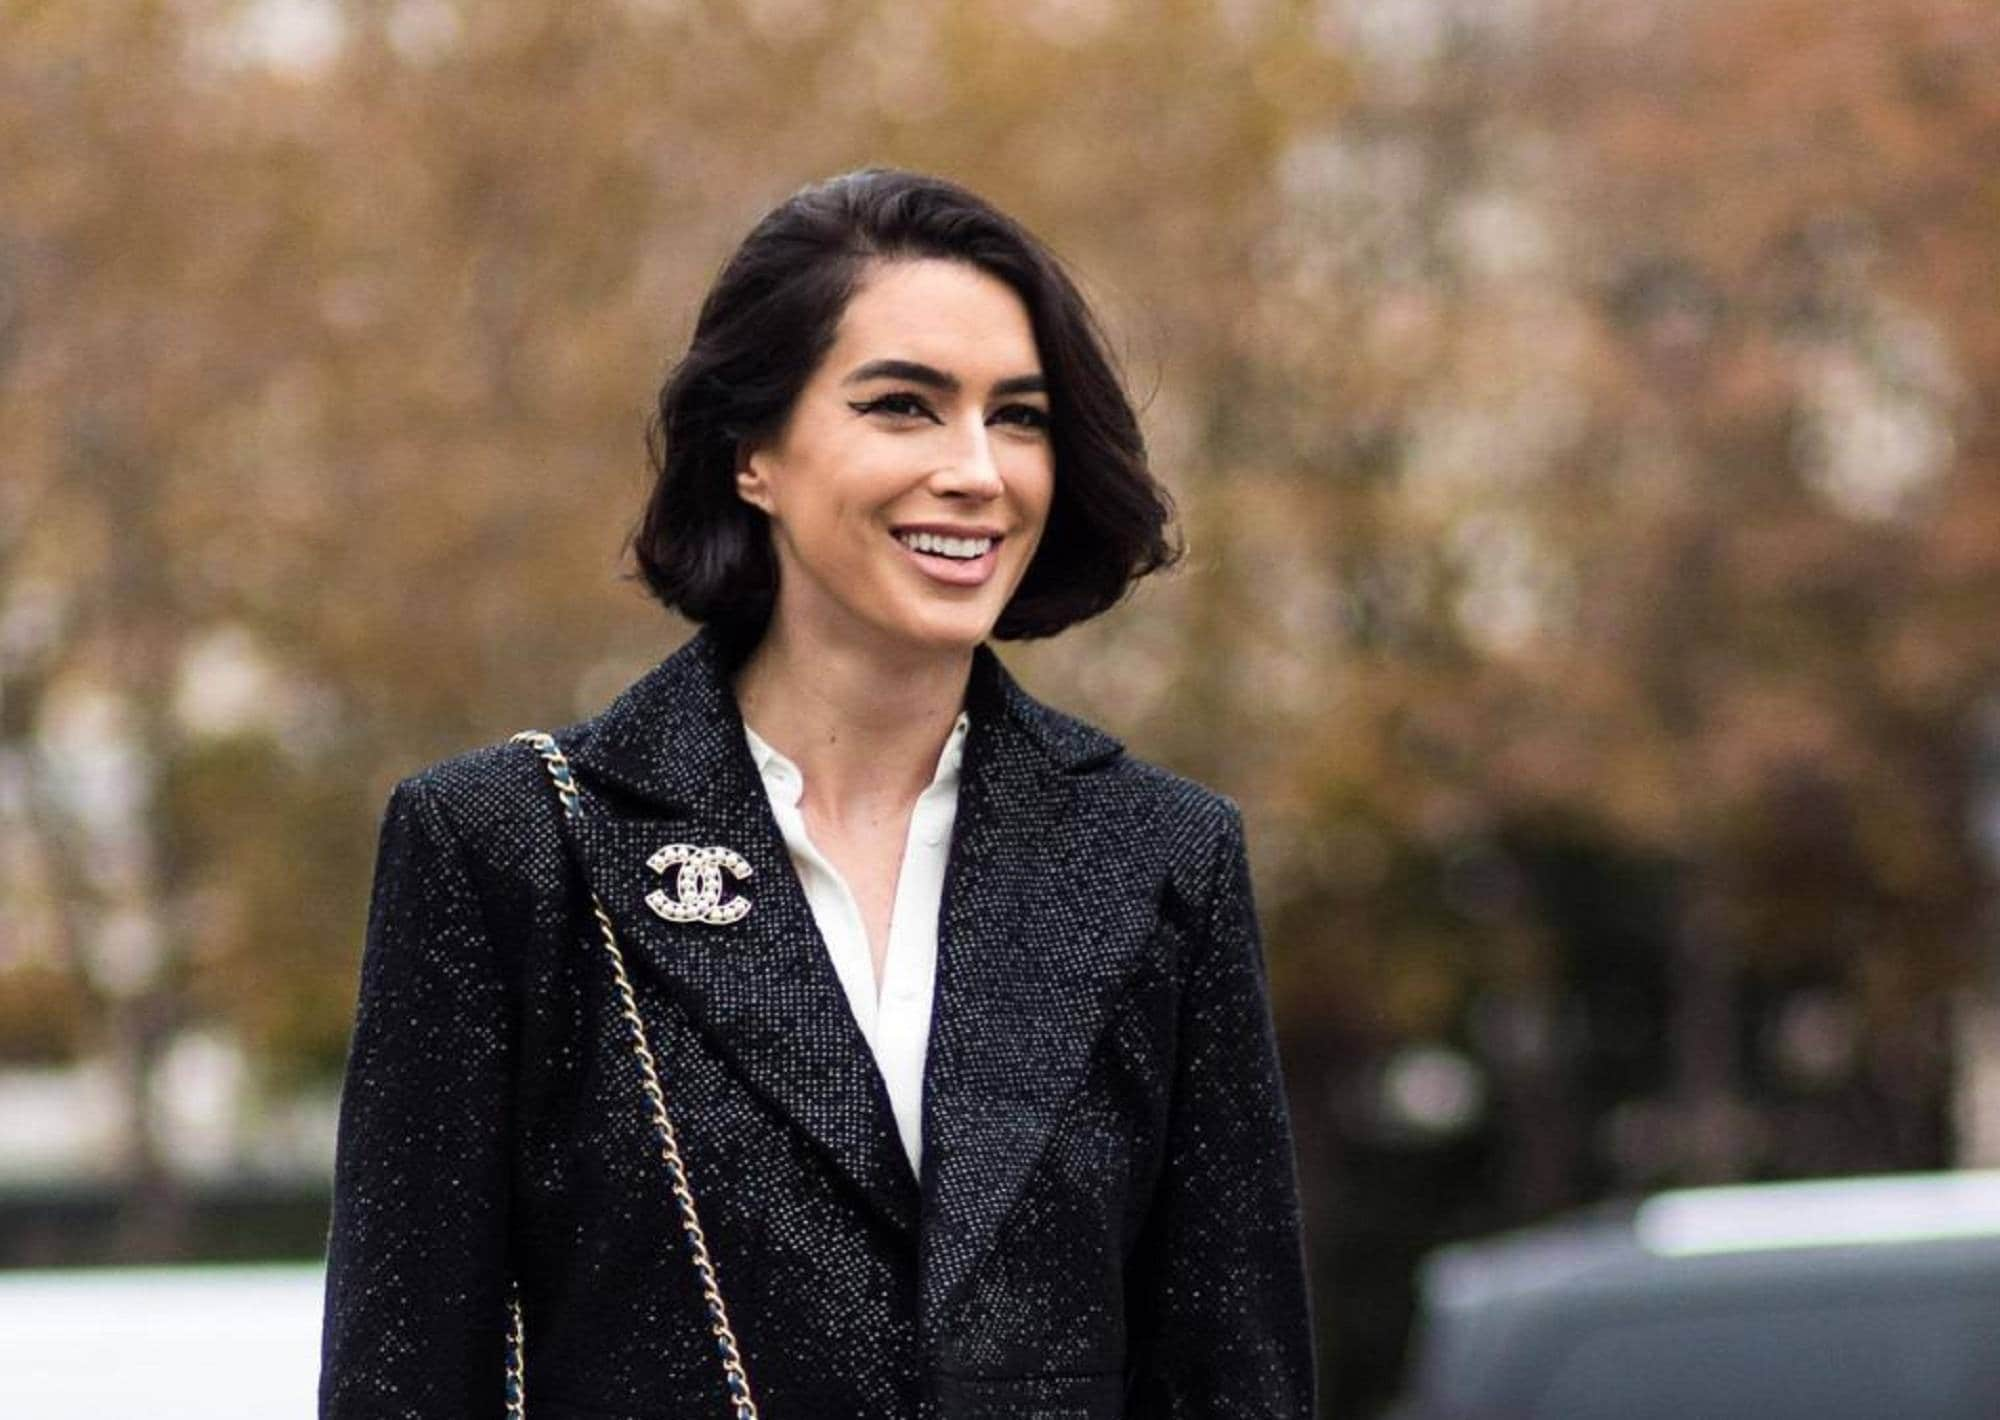 Medium bob: Closeup shot of woman wearing a black jacket with short black hair with blurred outdoor background